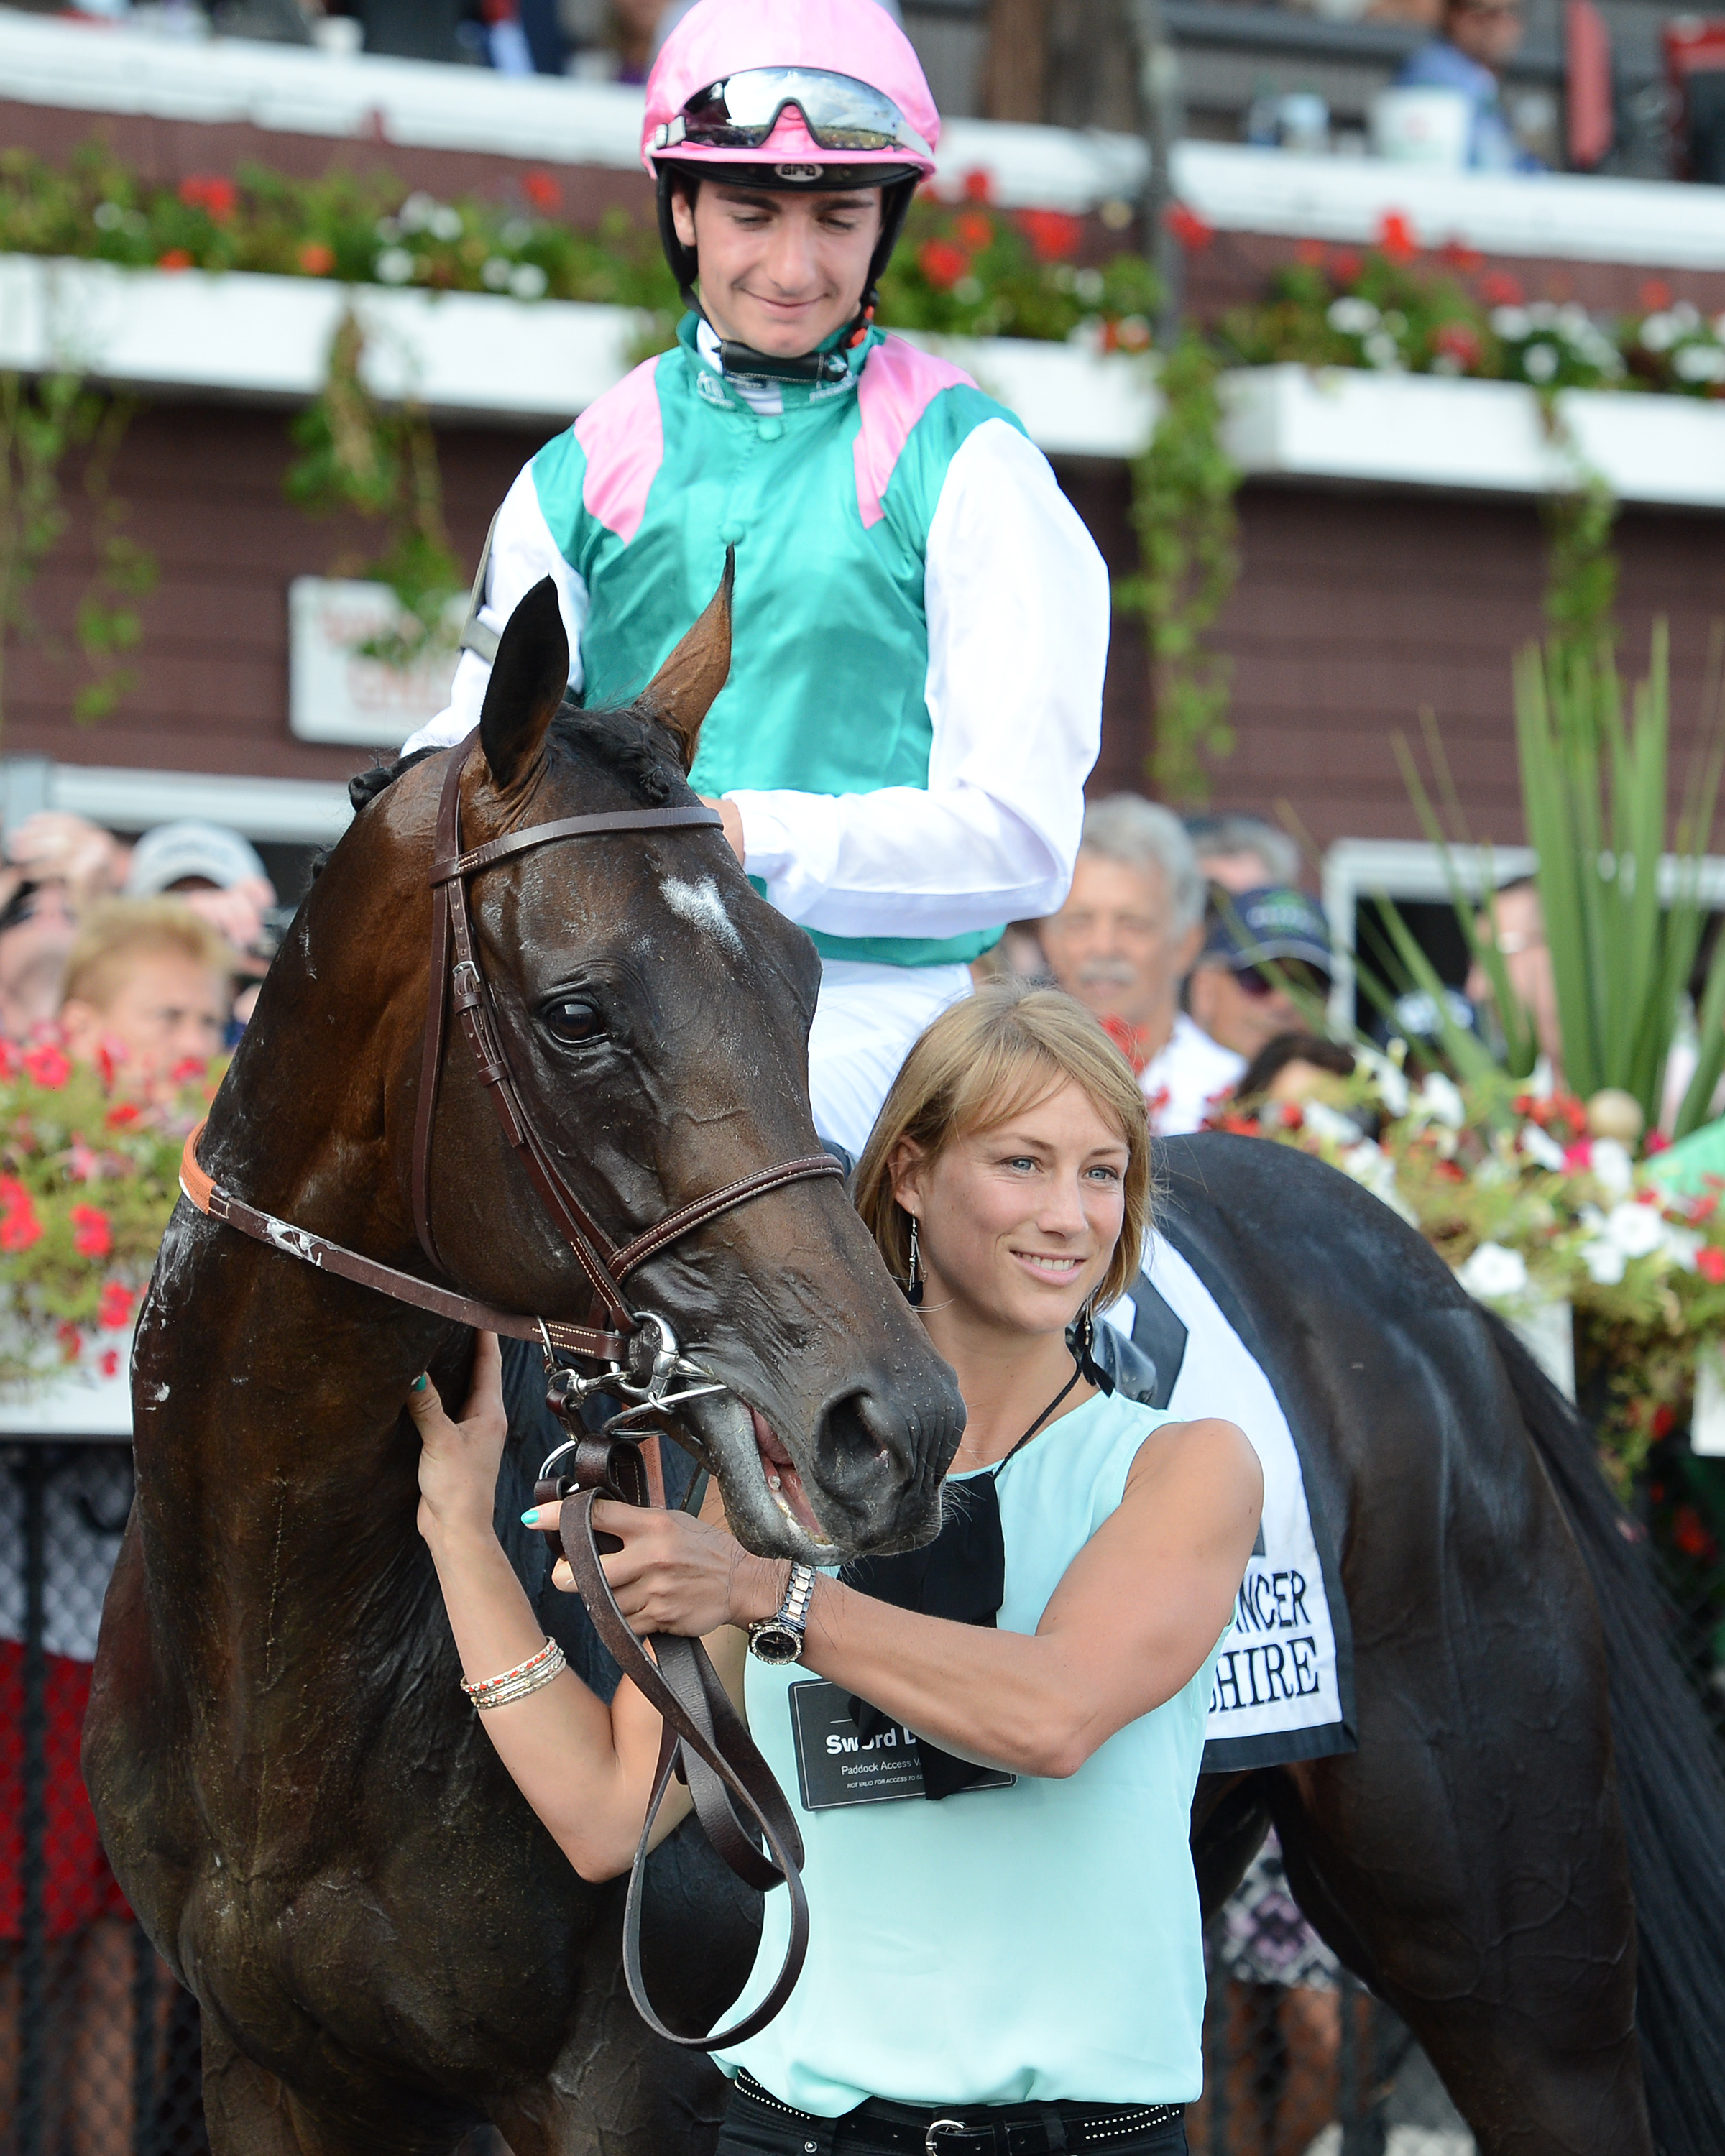 Flintshire looks to win the Sword Dancer for the second straight year. Photo Credit: Susie Raisher/NYRA